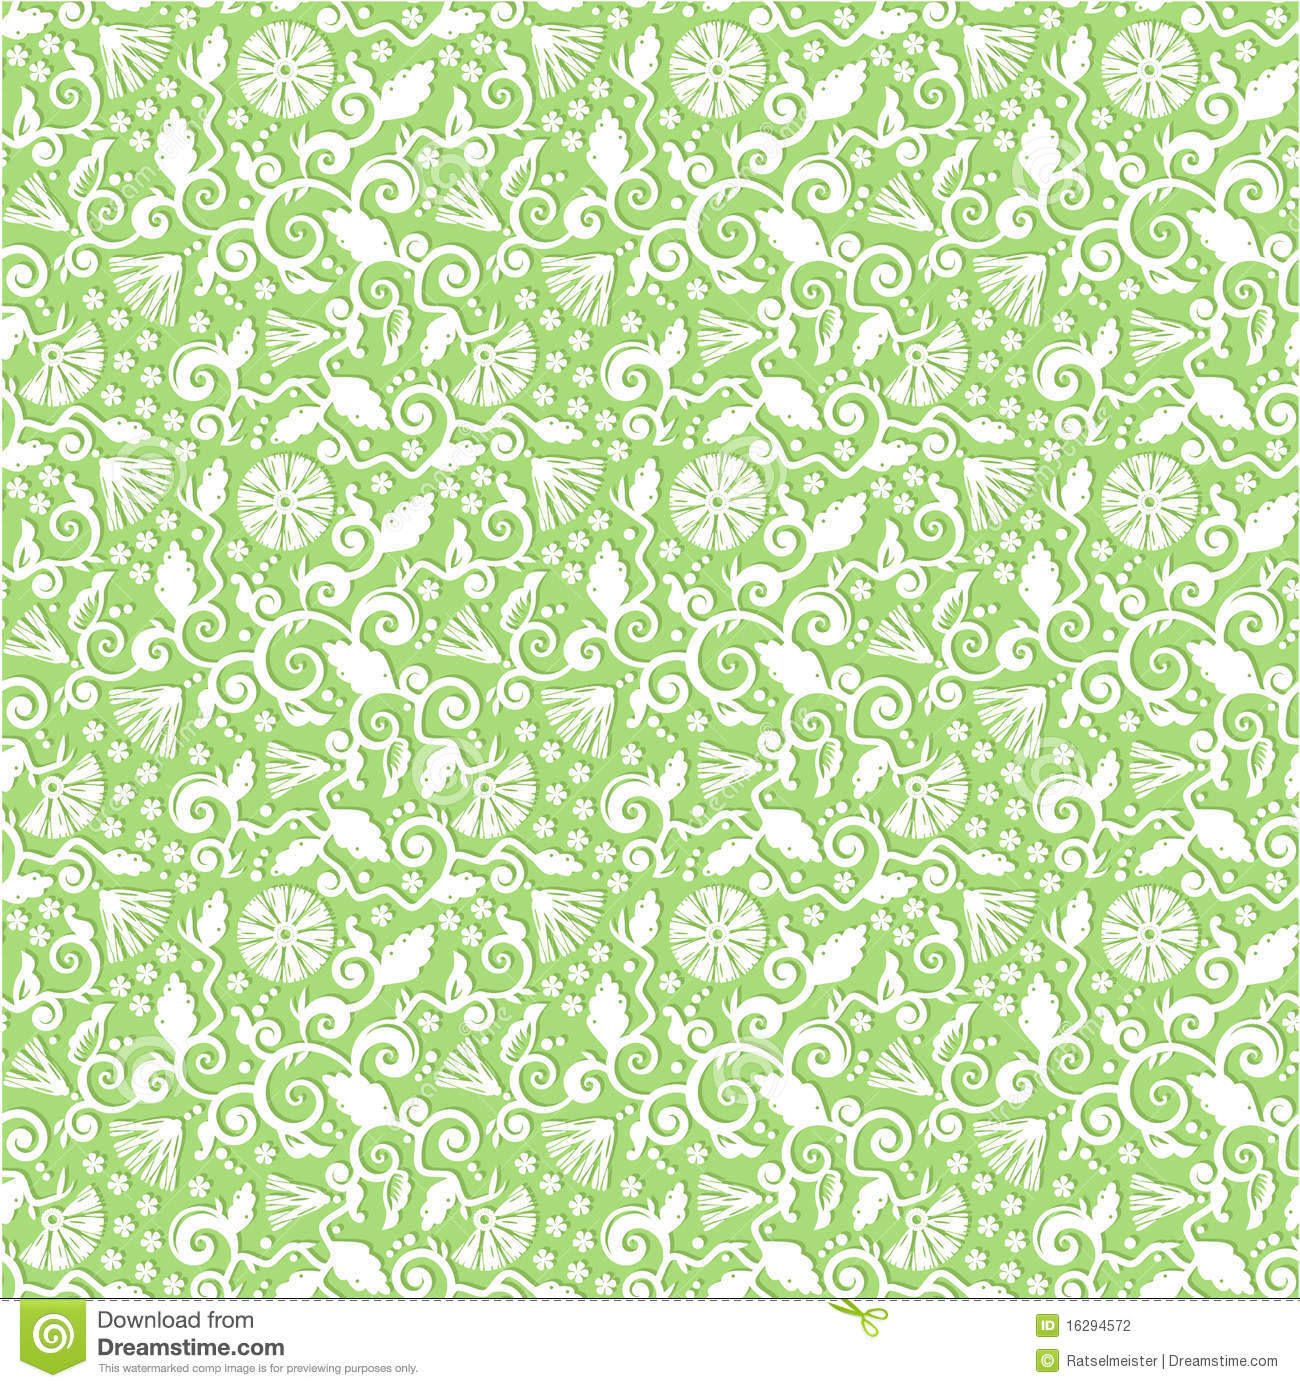 Green and white floral pattern - photo#11